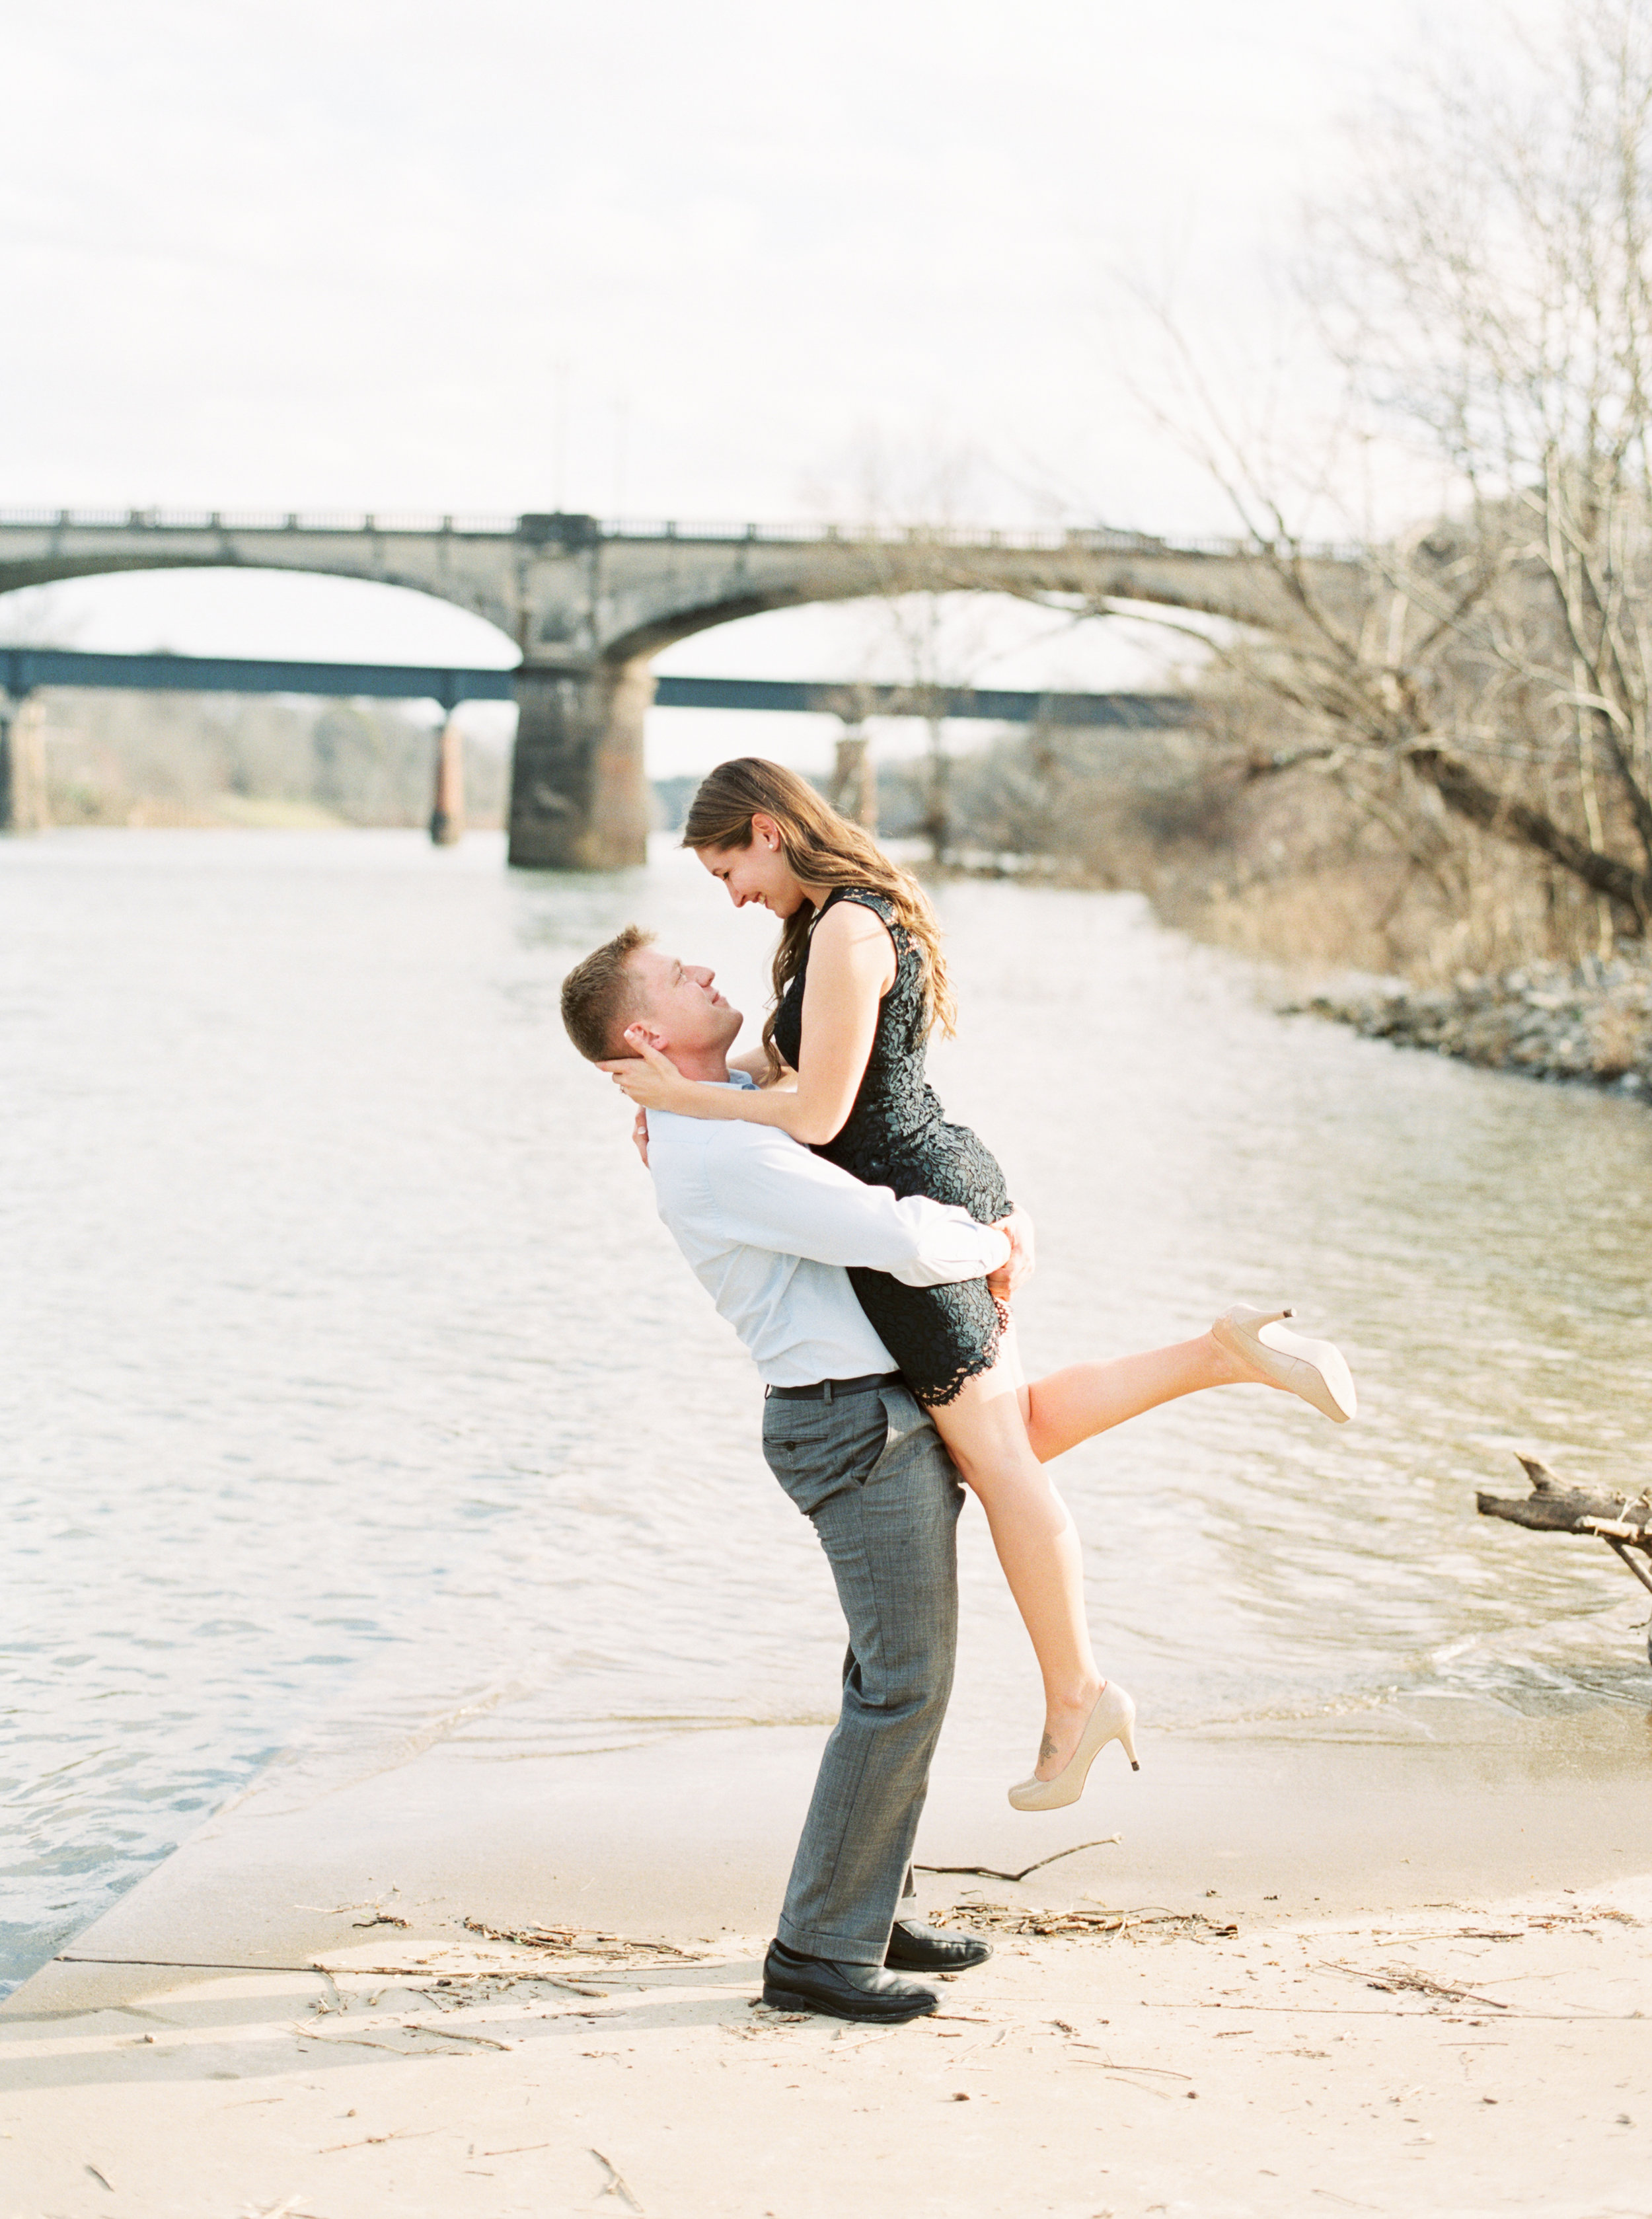 M_and_Z_Engagement_Columbus_Georgia_Riverwalk_Fallen_Photography_Film-65.jpg